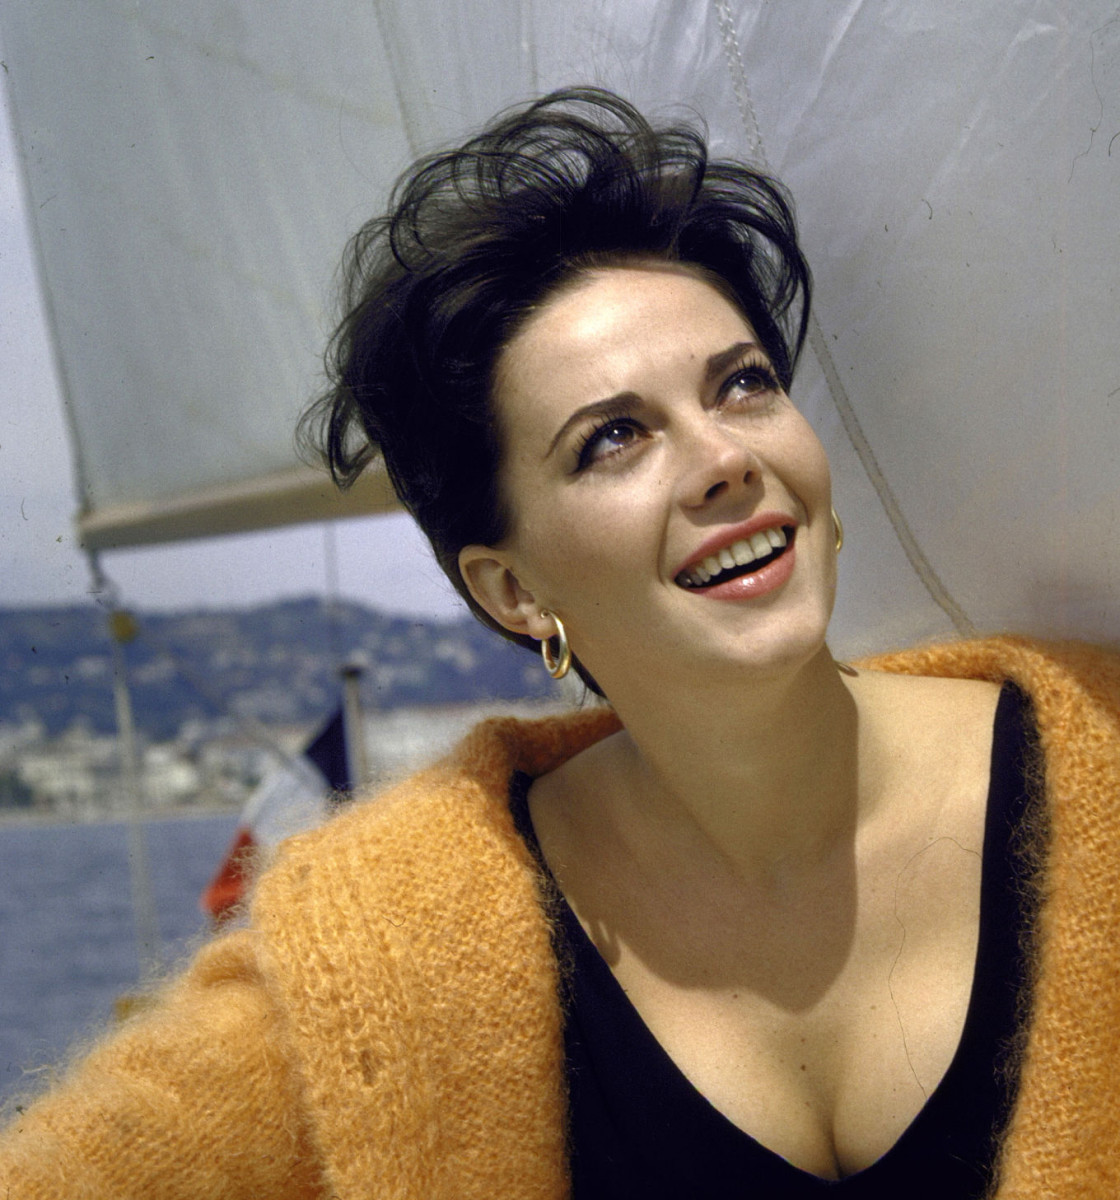 natalie wood u0026 39 s death  robert wagner becomes  u0026 39 person of